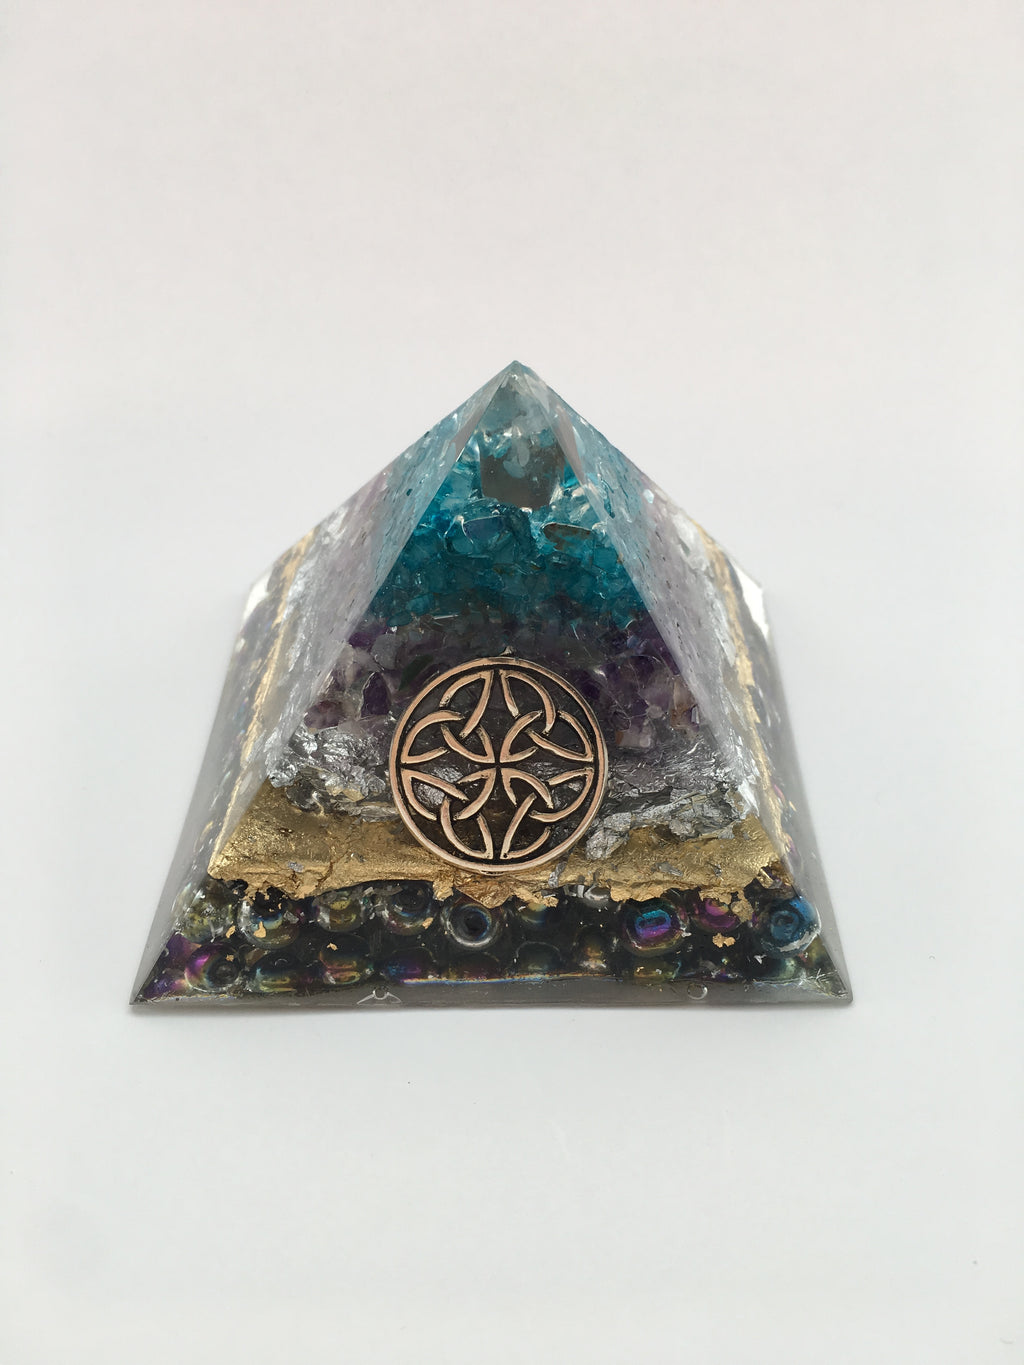 Chi Enhancing Pyramid — Large Blue Topaz Amethyst with Celtic Knot